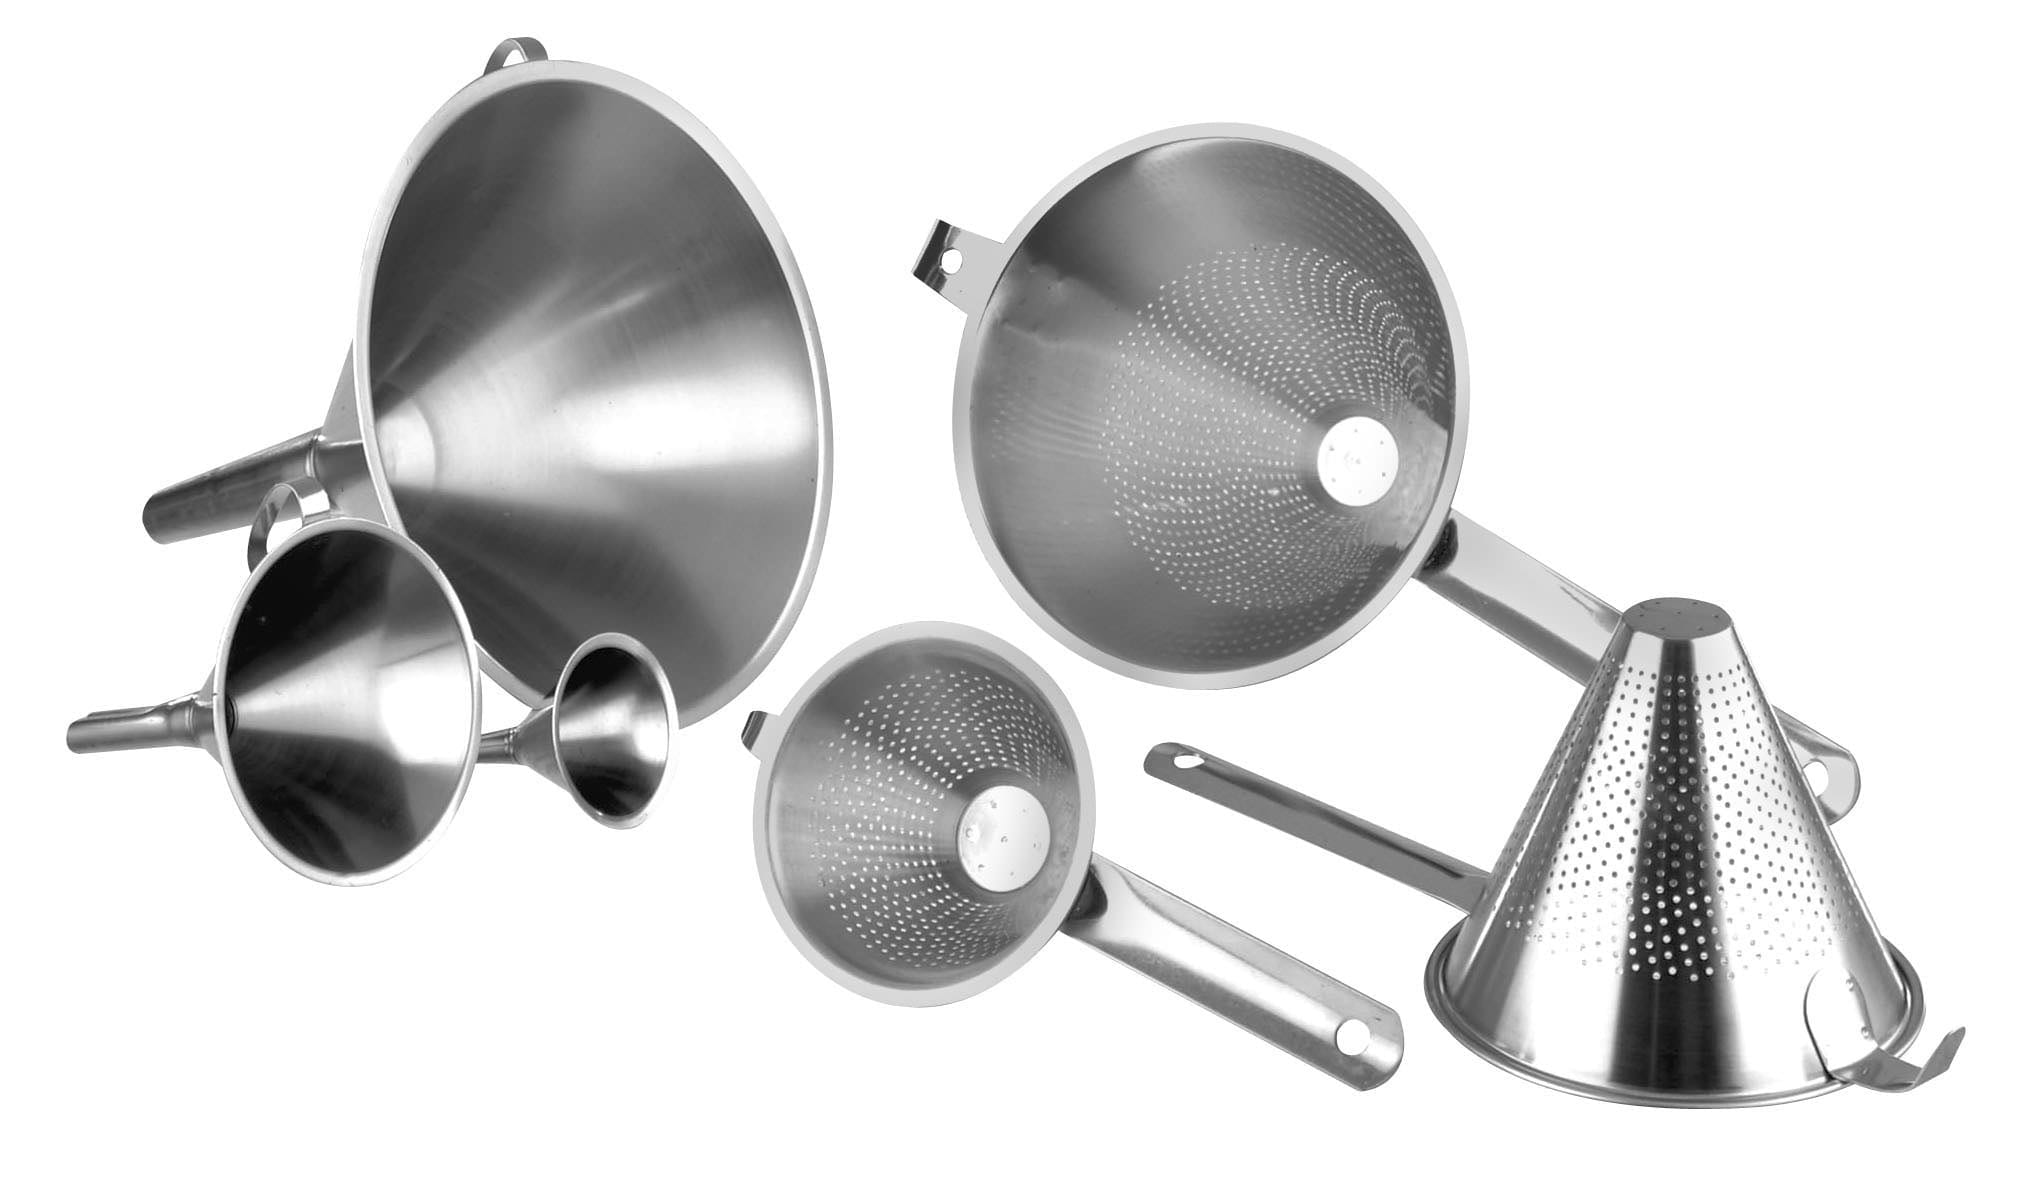 Stainless Steel Funnels and Strainers